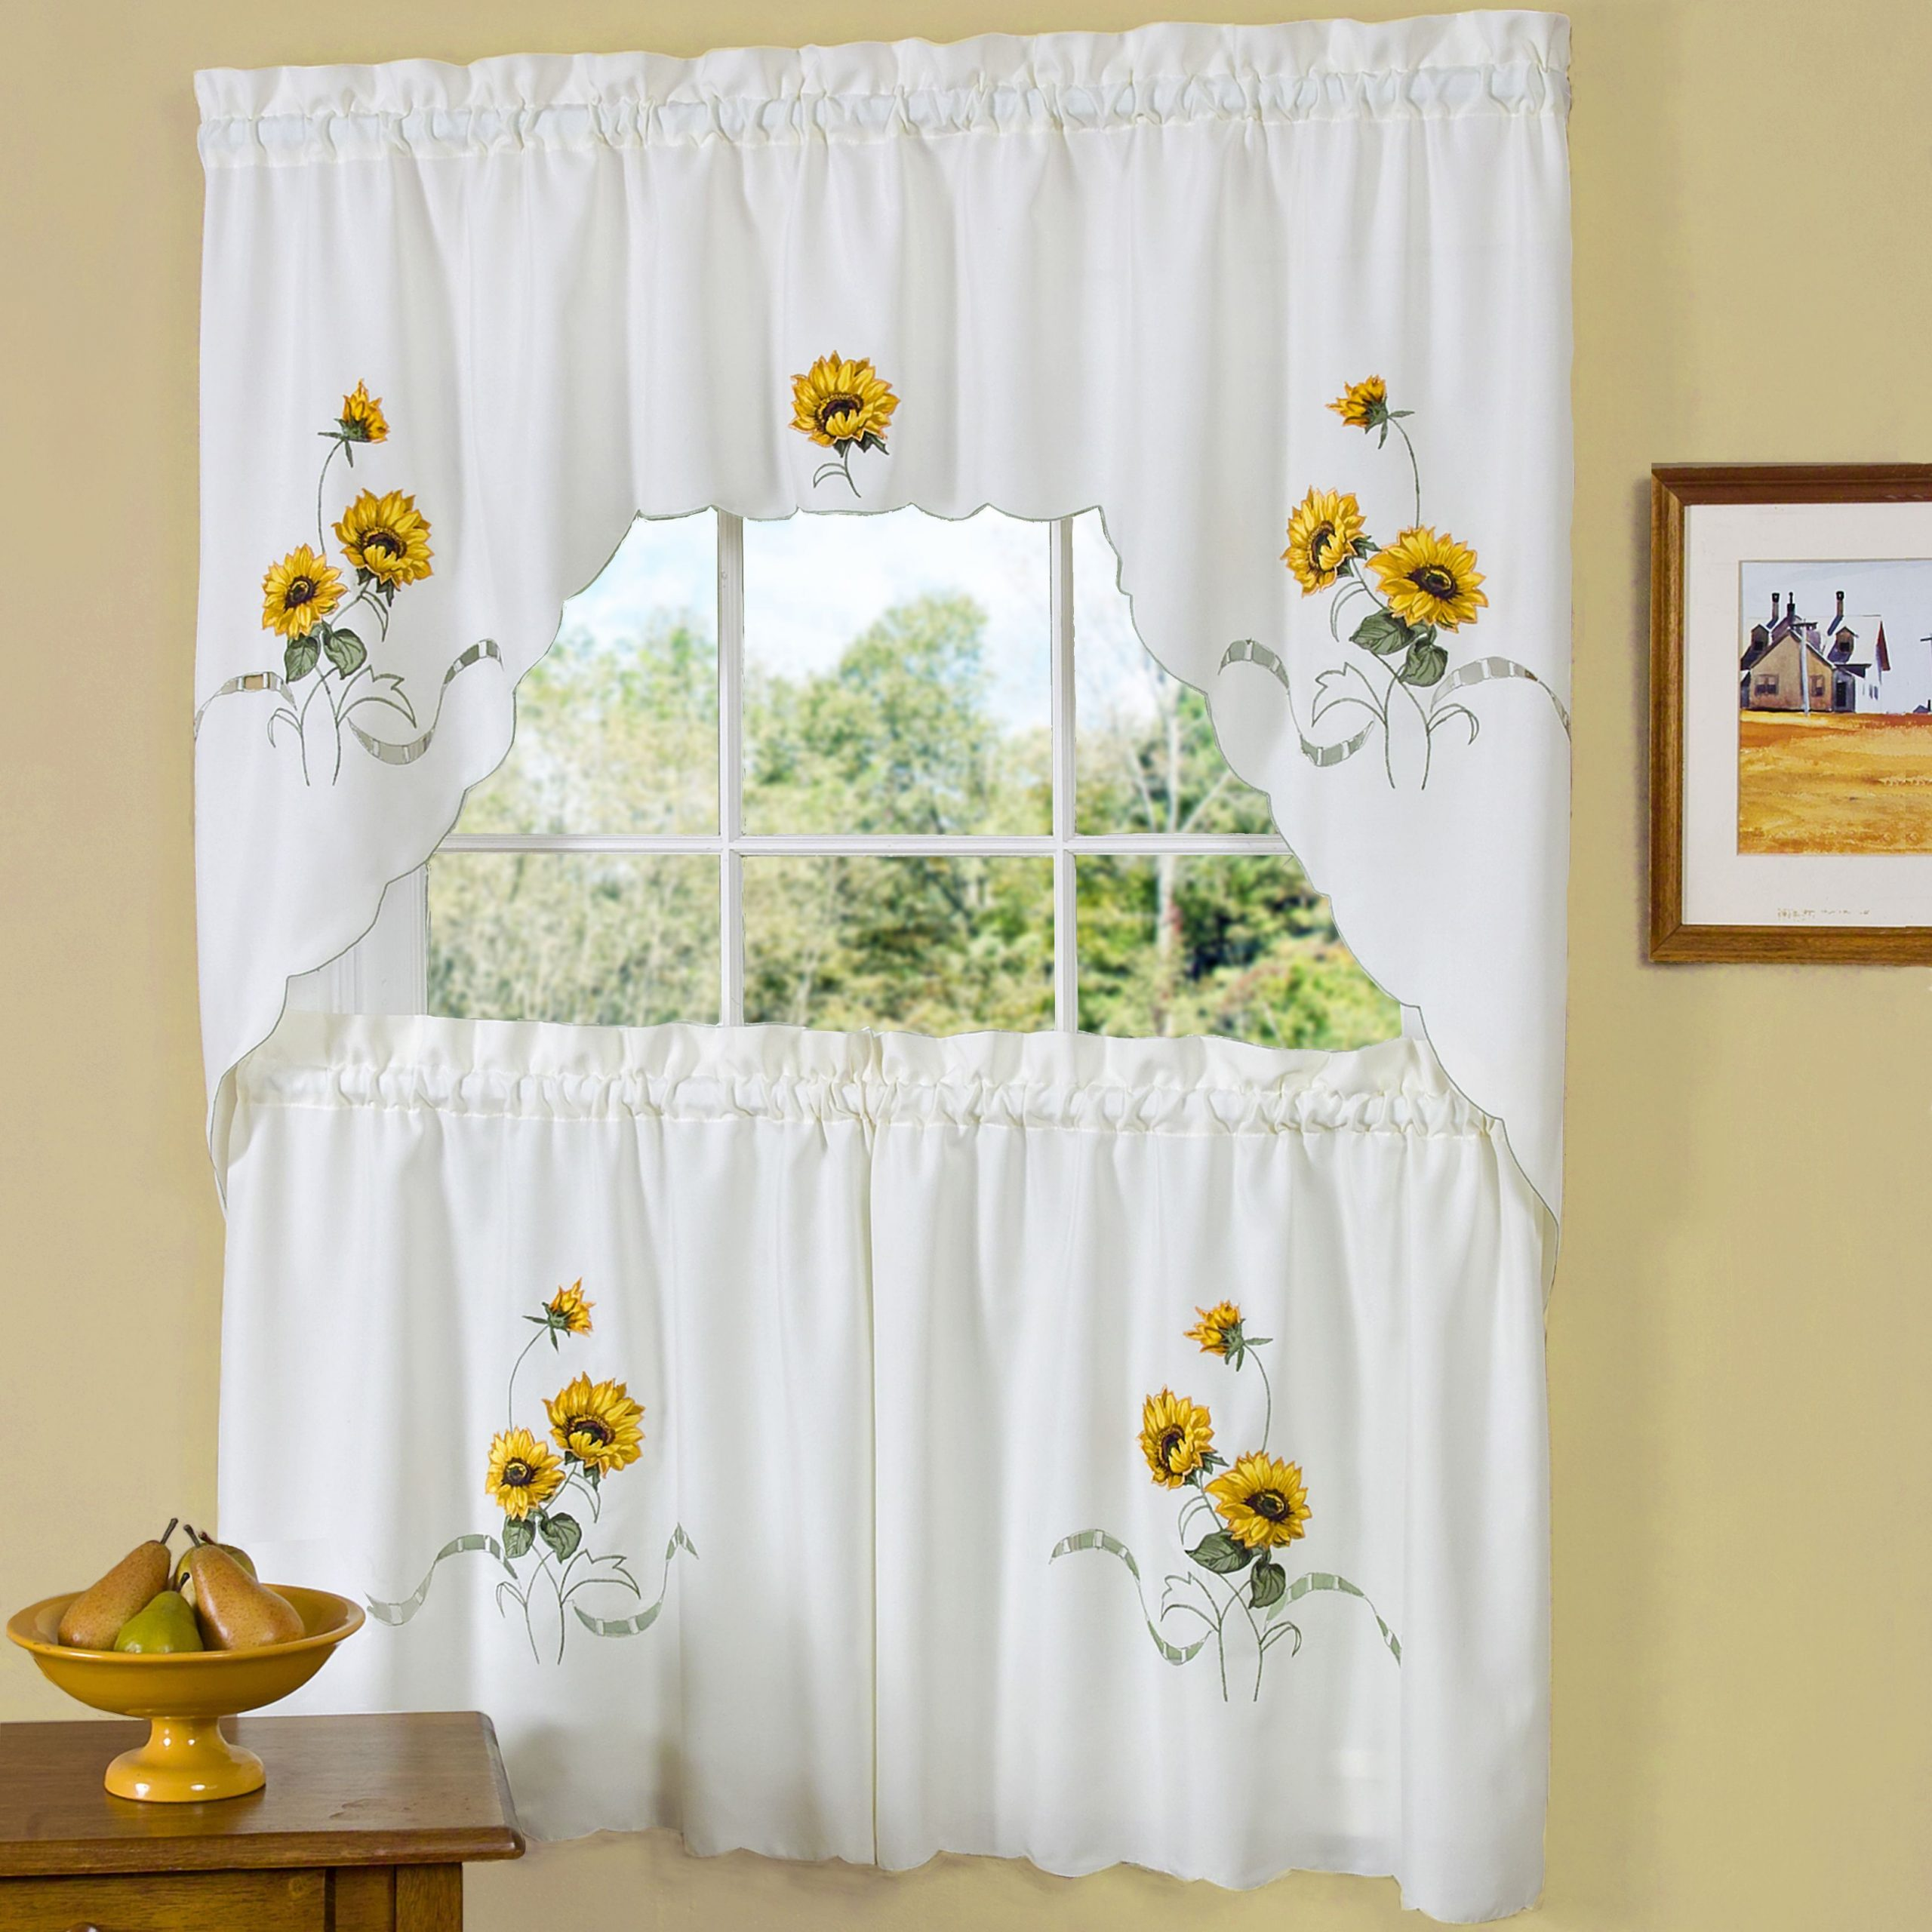 Traditional Tailored Tier And Swag Window Curtains Sets With Ornate Flower Garden Print Pertaining To Most Popular Traditional Two Piece Tailored Tier And Swag Window Curtains (View 7 of 20)